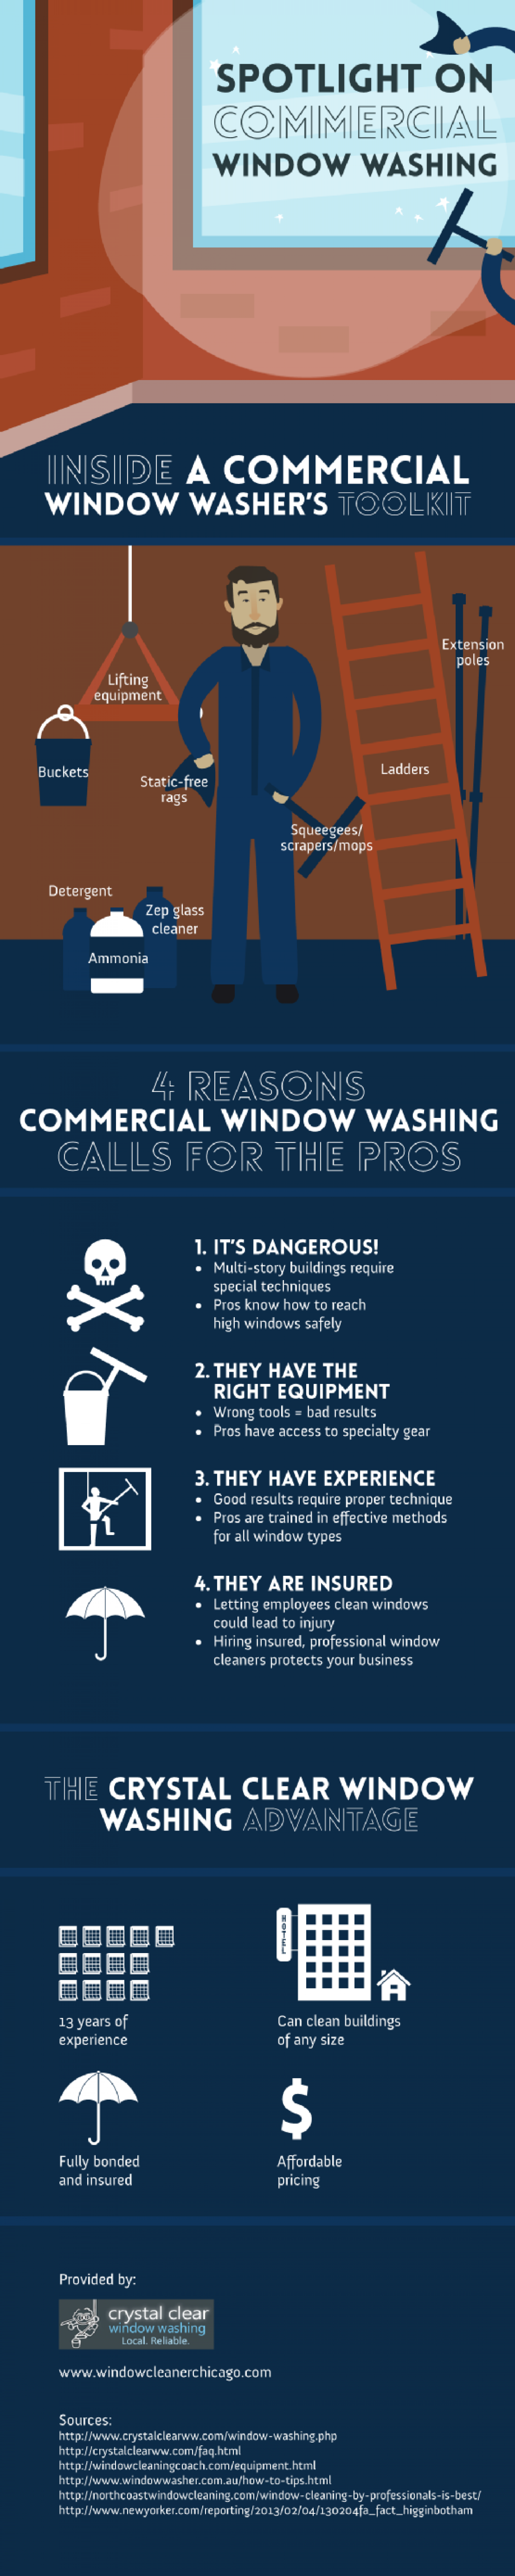 Spotlight on Commercial Window Washing Infographic